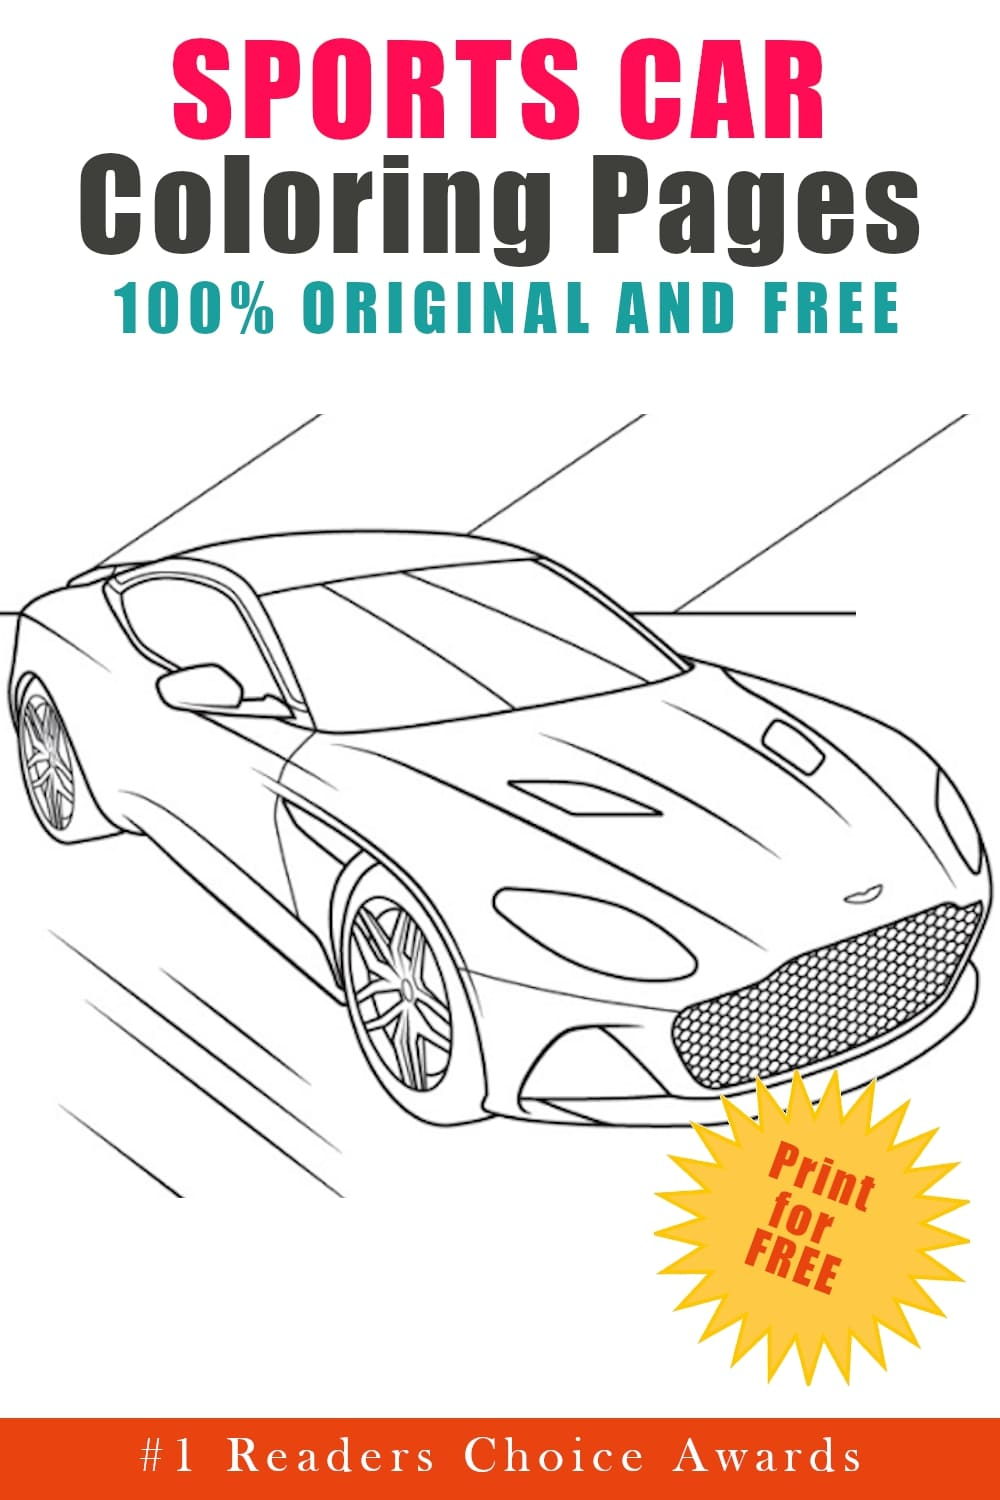 original and free sports car coloring pages